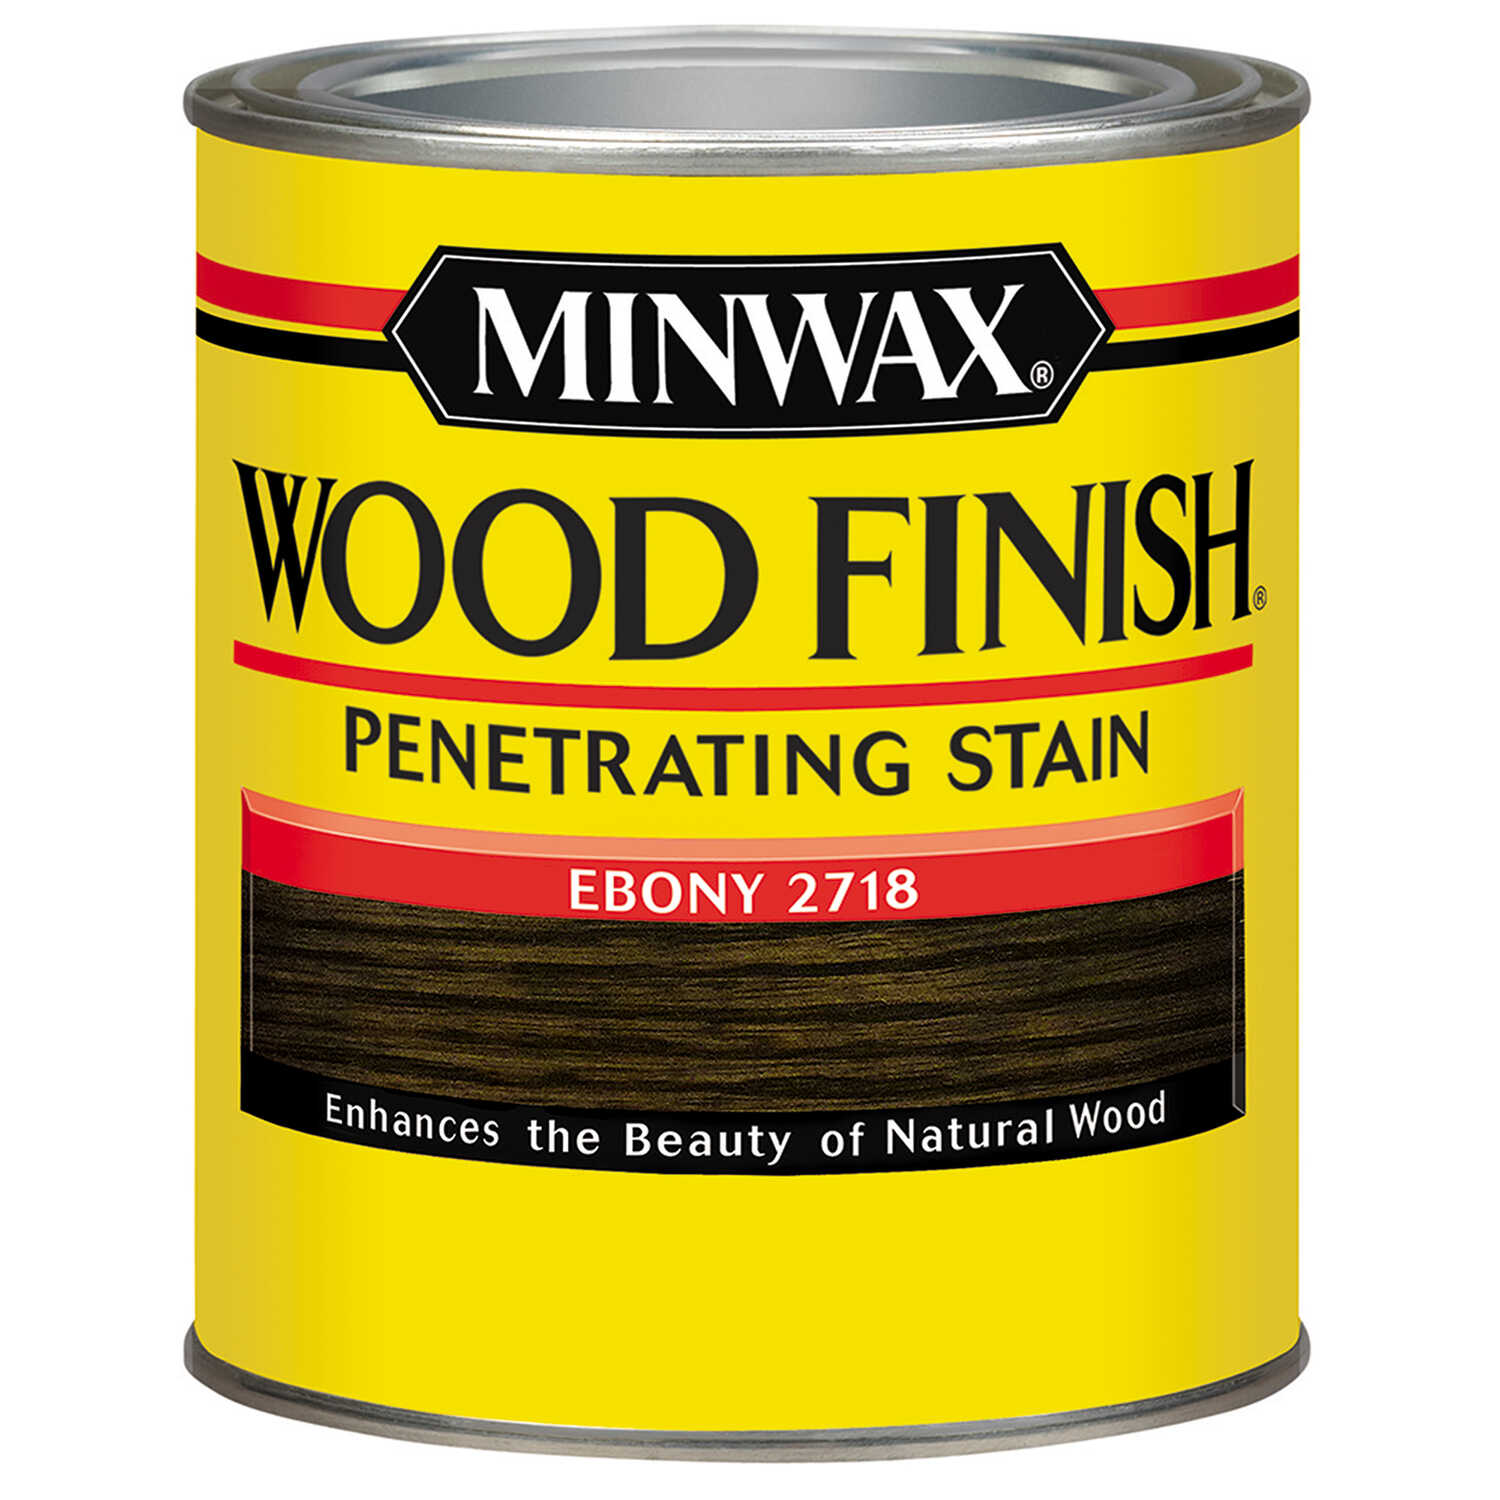 Minwax  Wood Finish  Semi-Transparent  Ebony  Oil-Based  Wood Stain  0.5 pt.